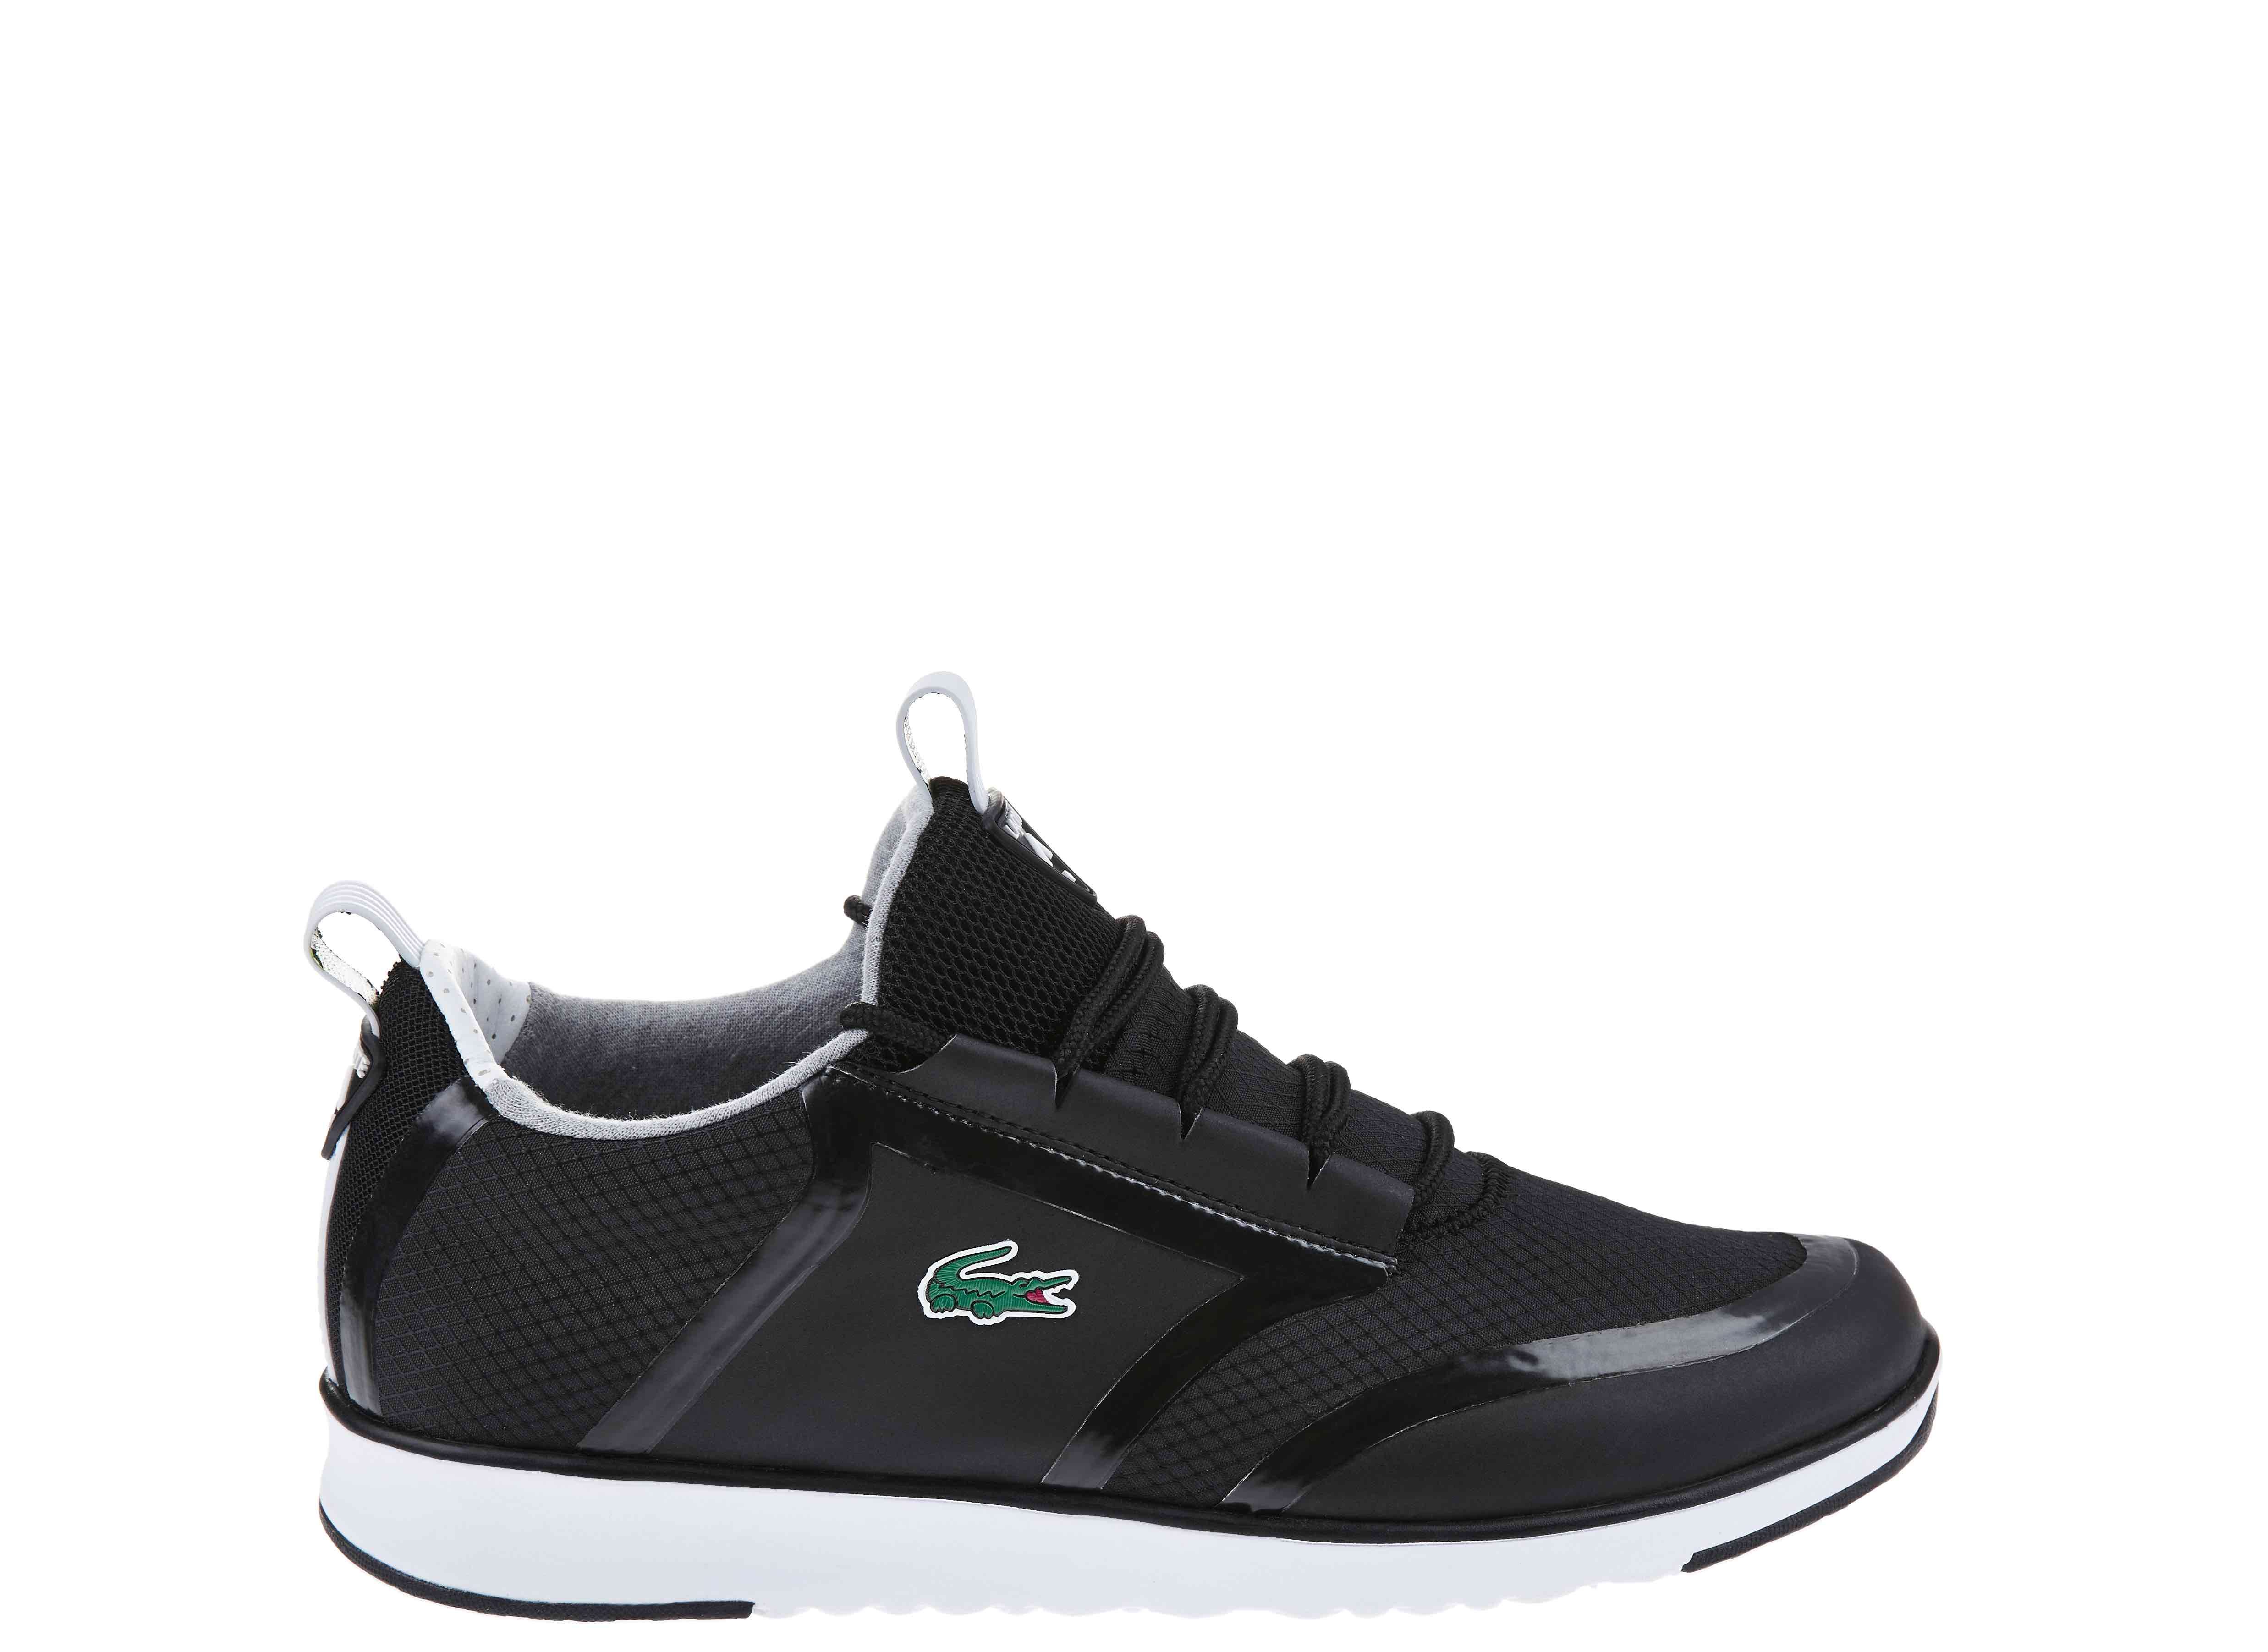 L.IGHT LT12 TEXTILE SYNTHETIC BLK BLK (1)